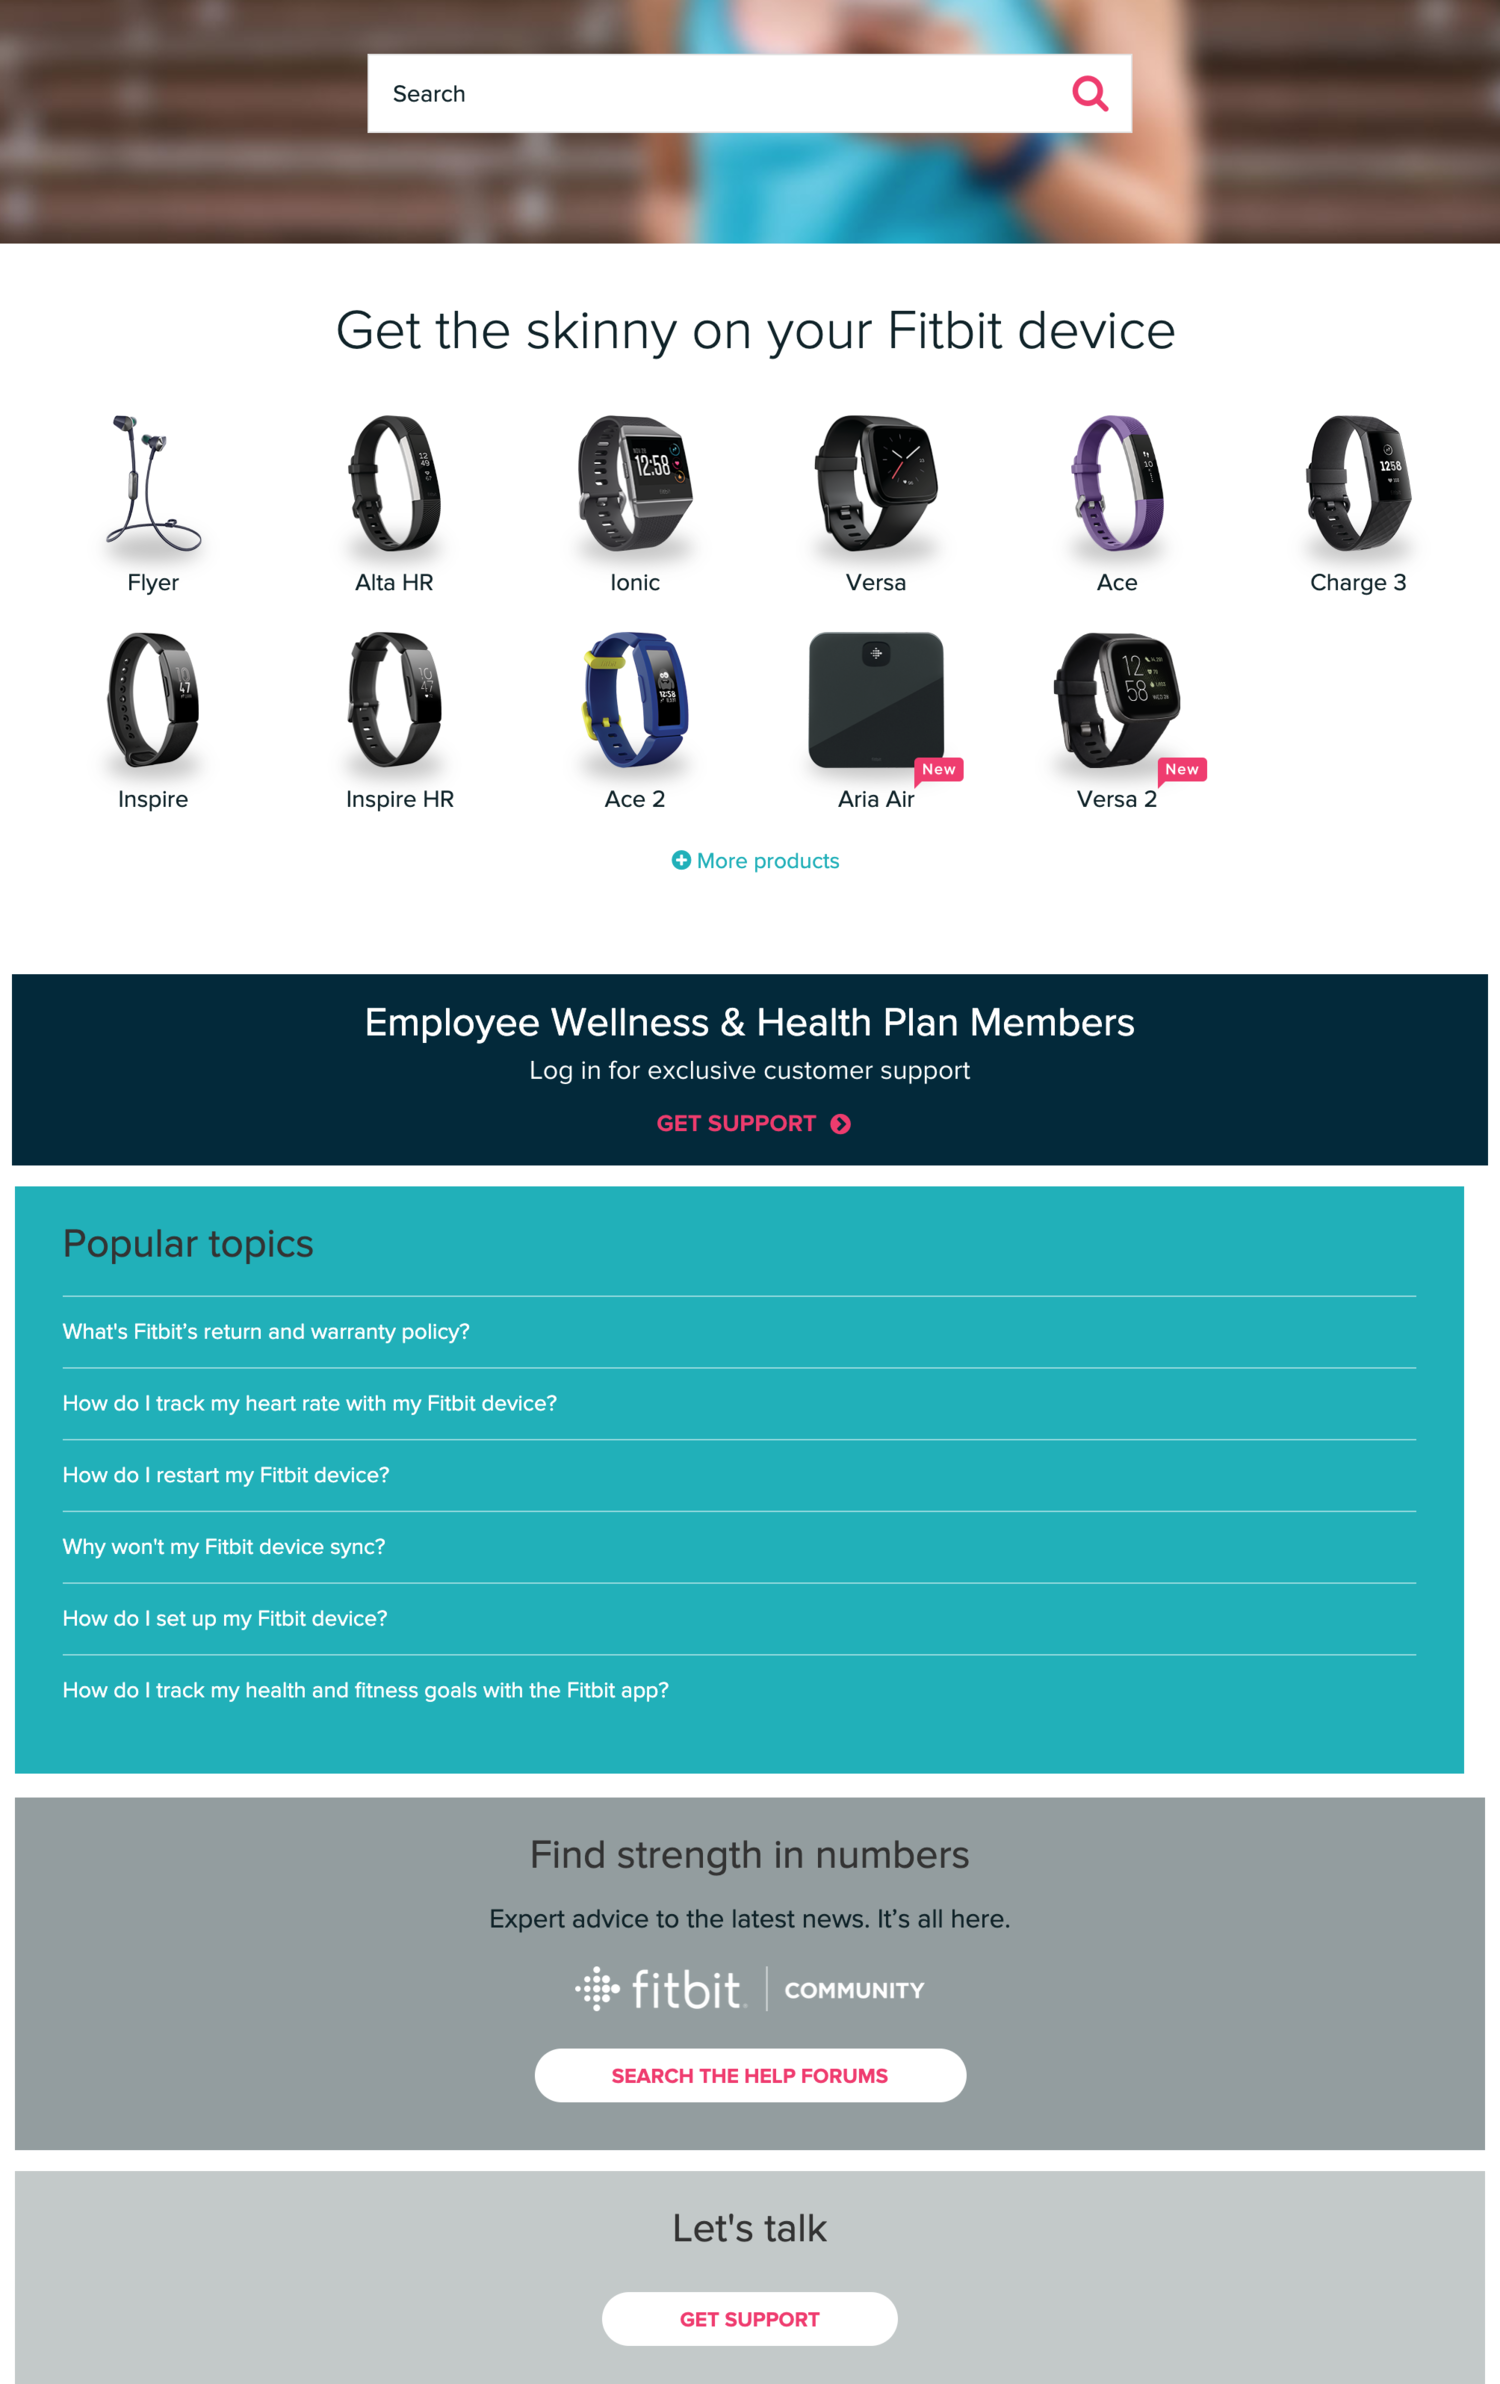 Fitbit brand help center self-service